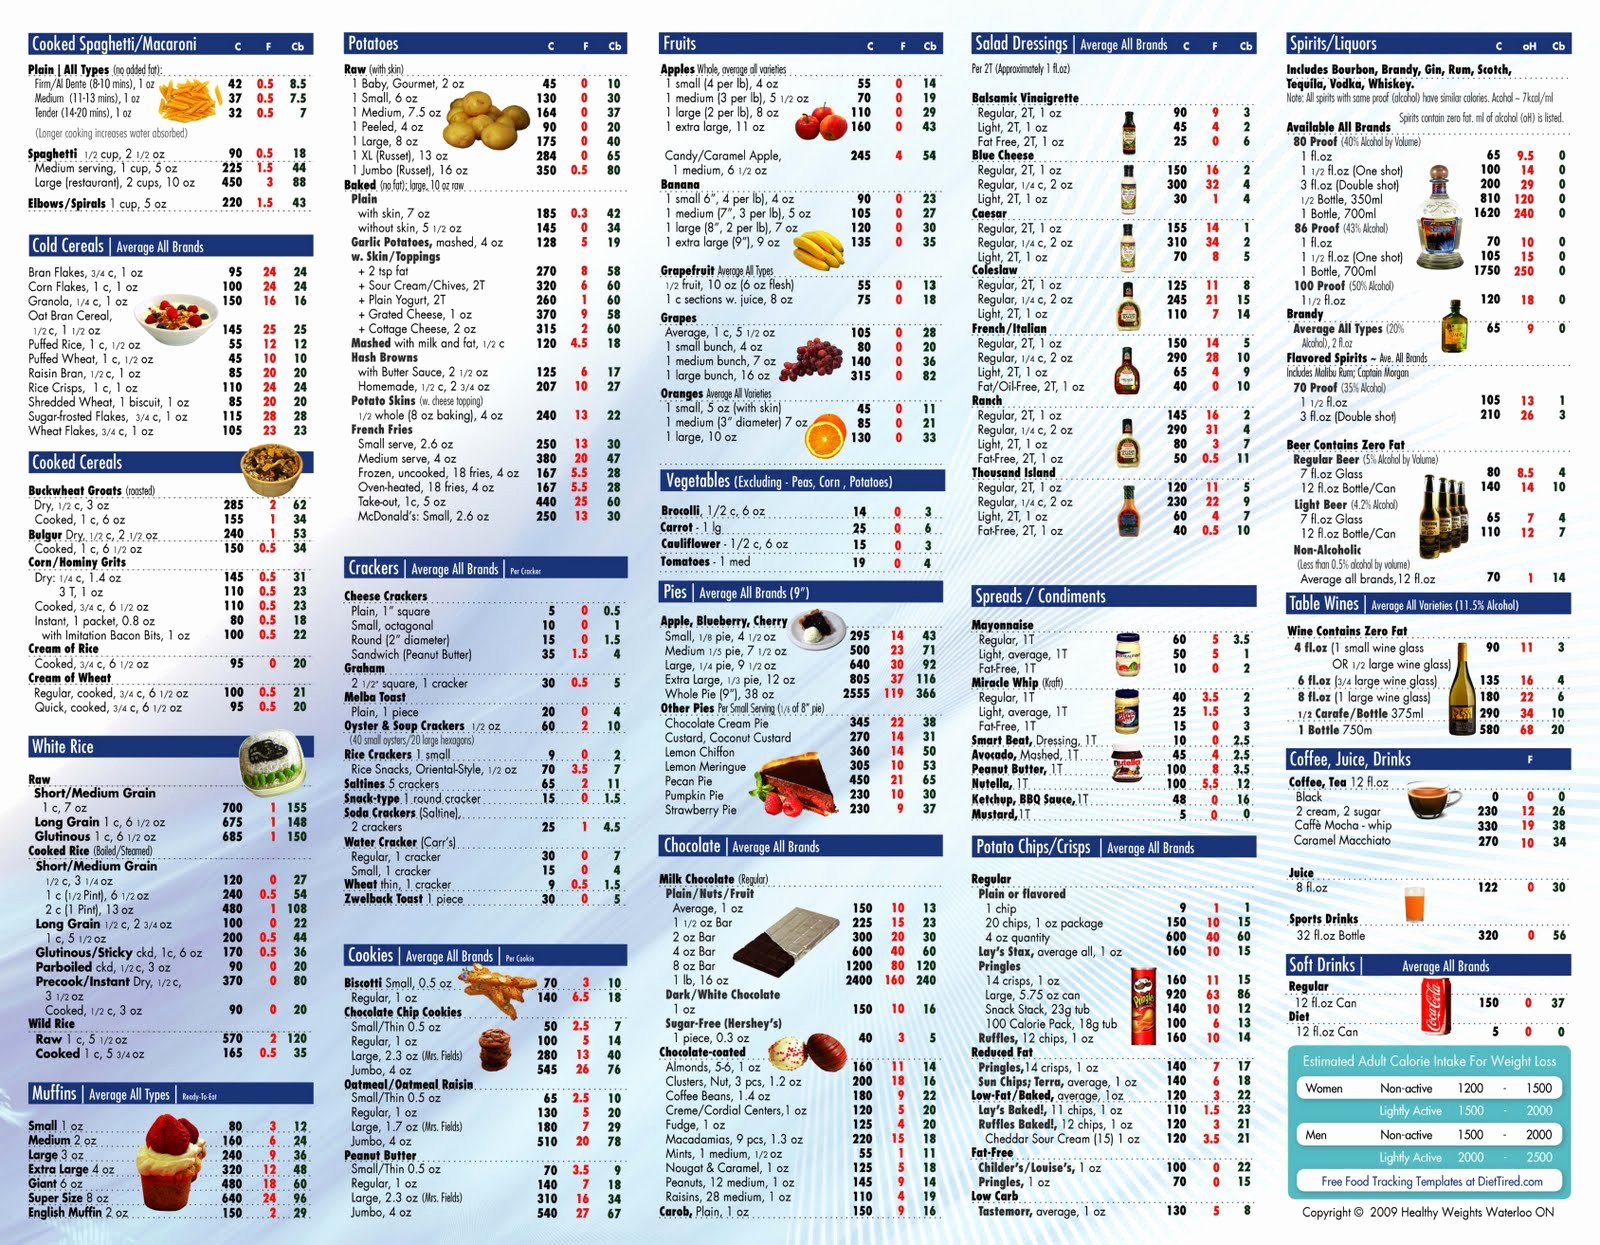 Calorie Charts for Food Awesome Food Calorie Table Food Calorie Table